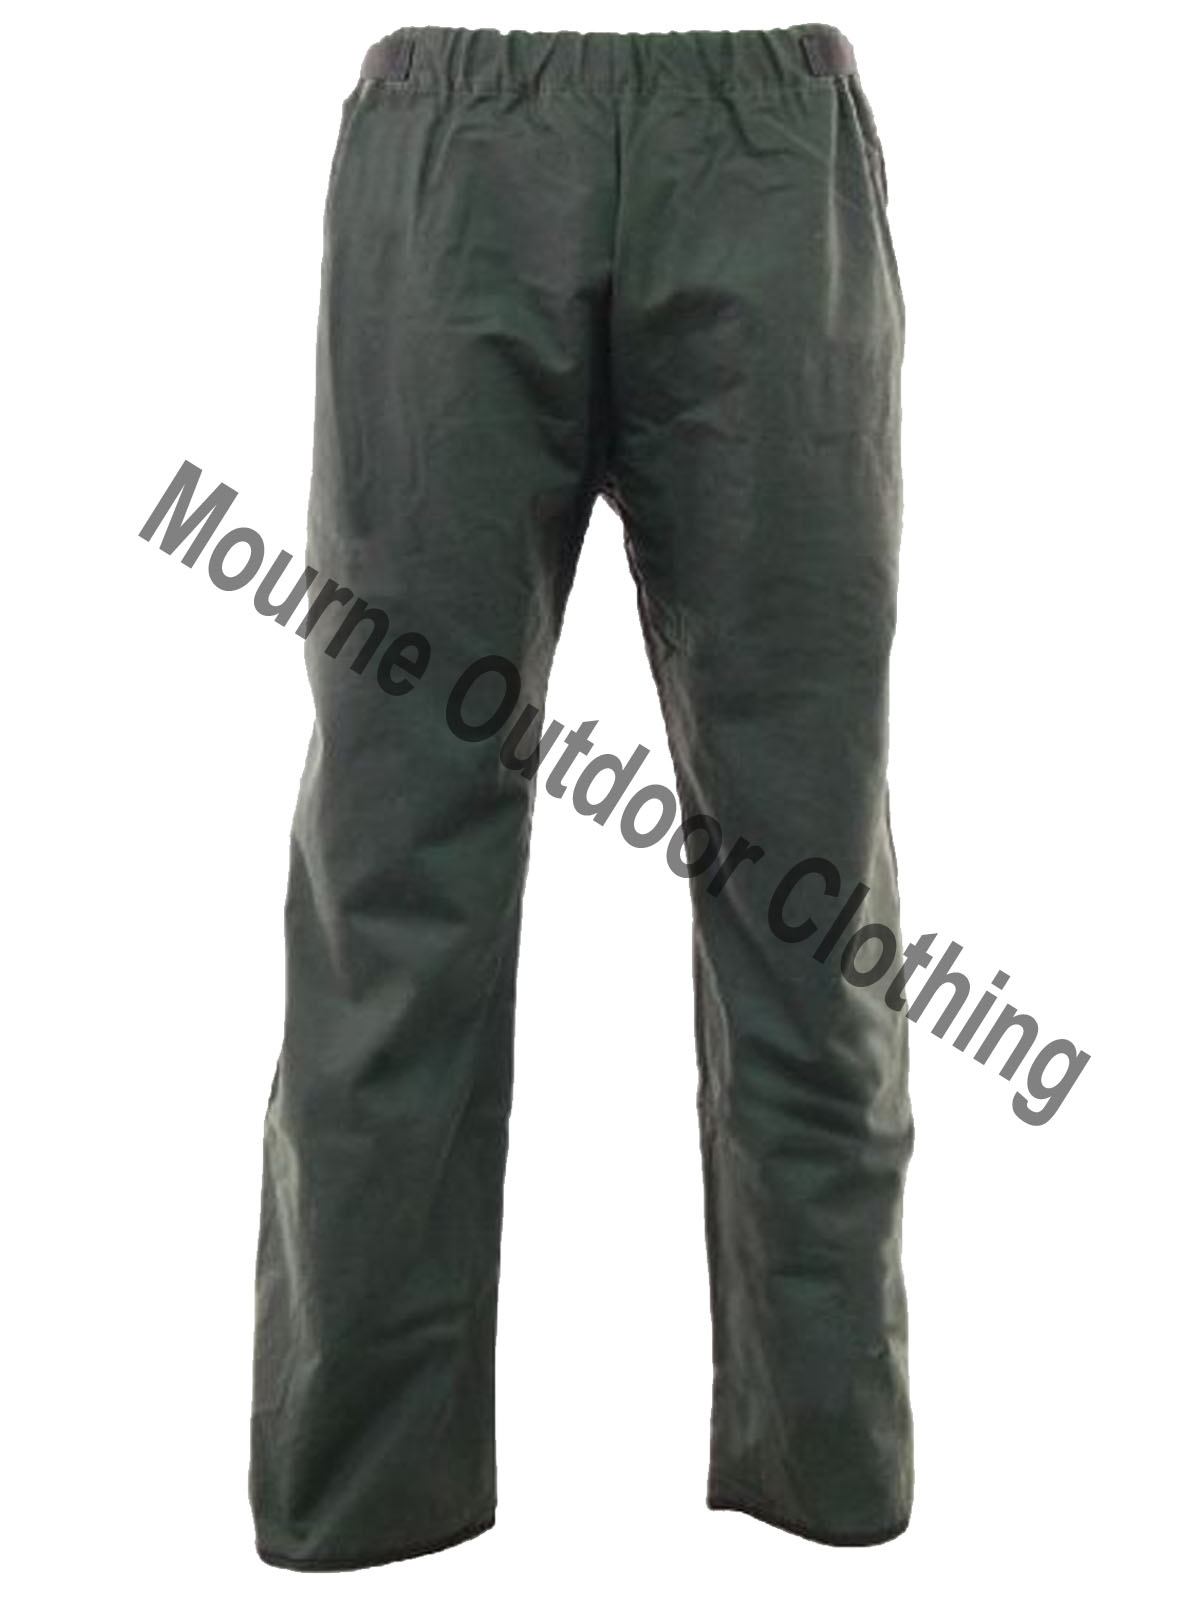 Greenbelt Wax Over Trousers Olive